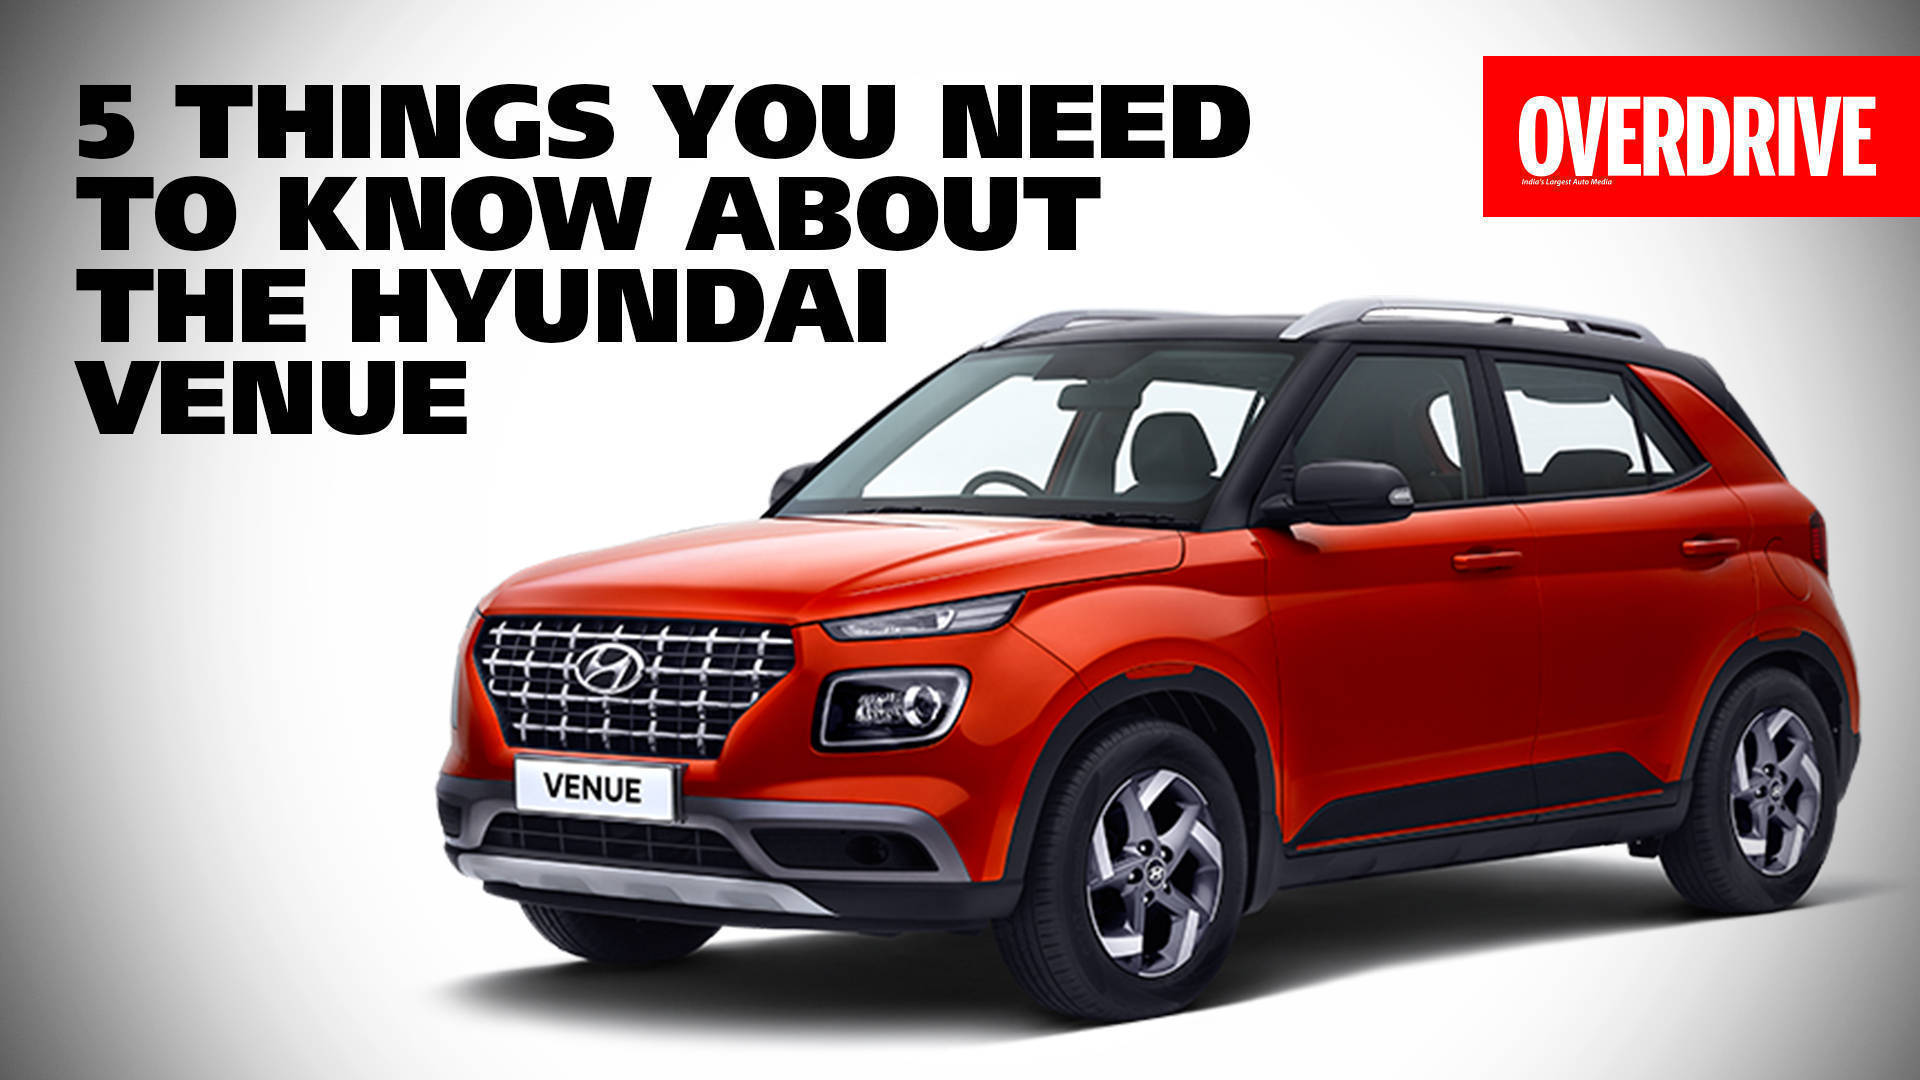 2019 Hyundai Venue SUV: Top 5 things that you should know